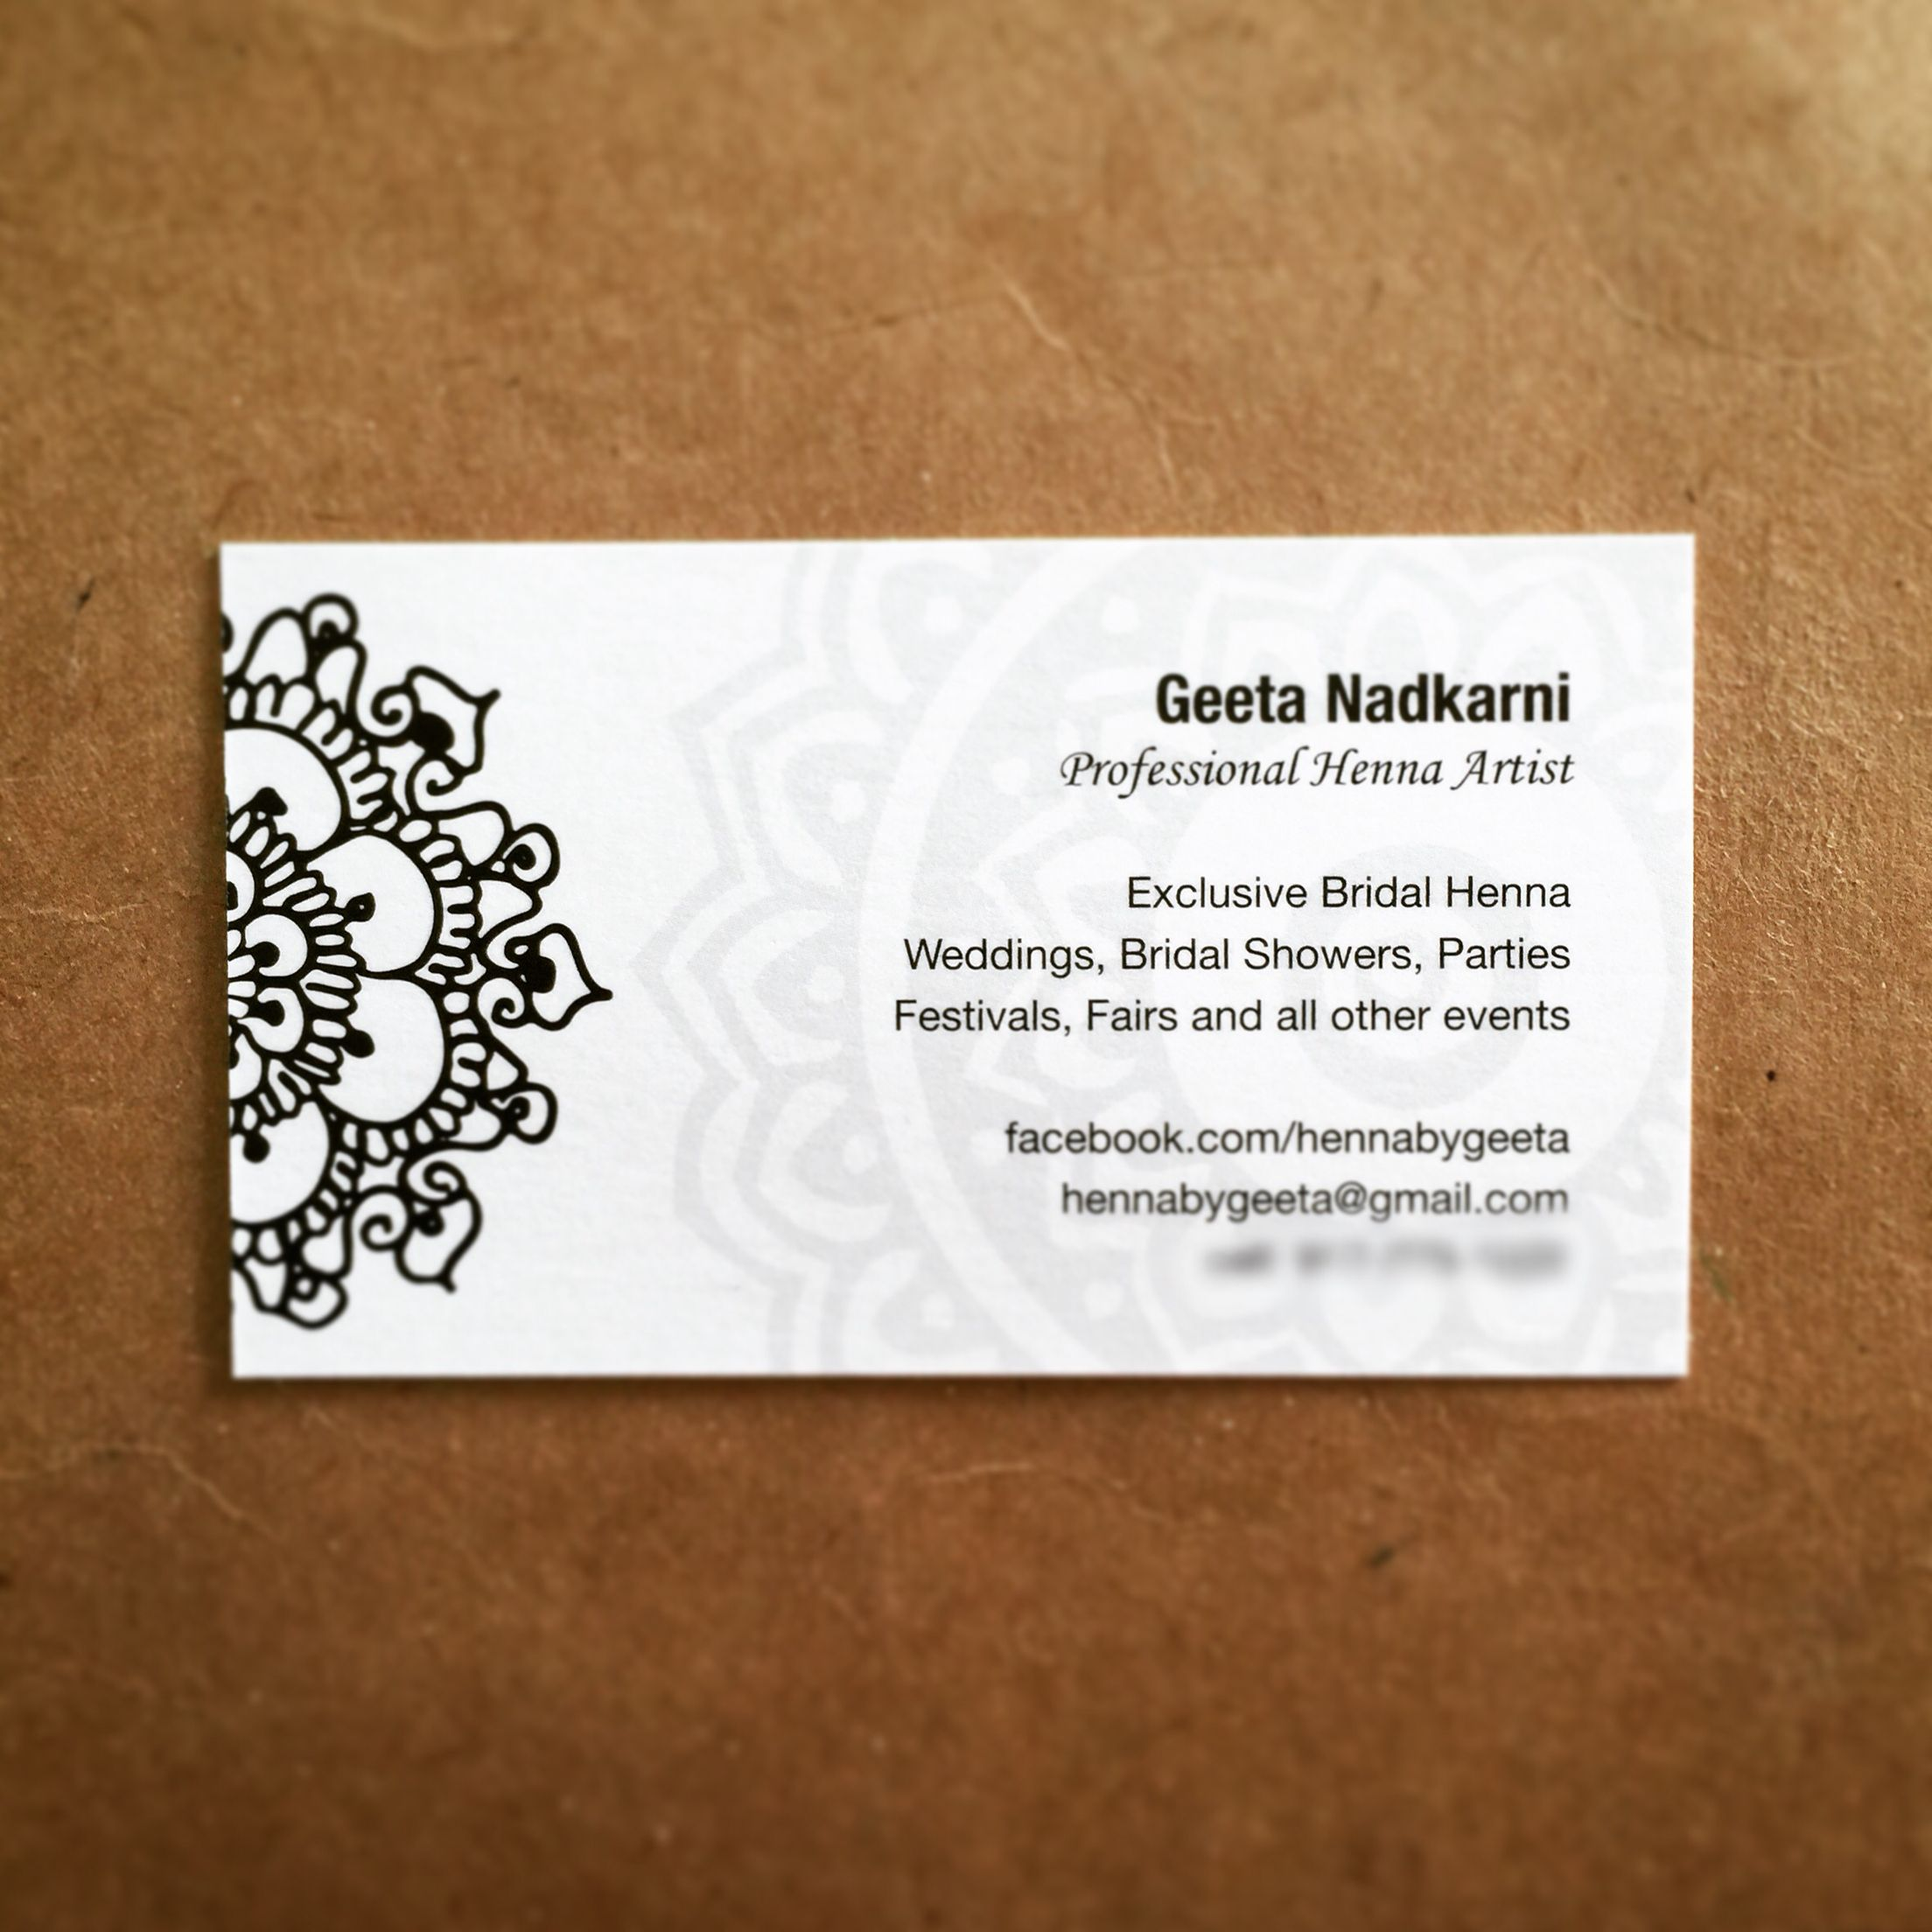 Henna By Geeta Mehndi Mehendi Designs Check Out Www Facebook Com H Artist Business Cards Design Vintage Business Cards Template Free Printable Business Cards